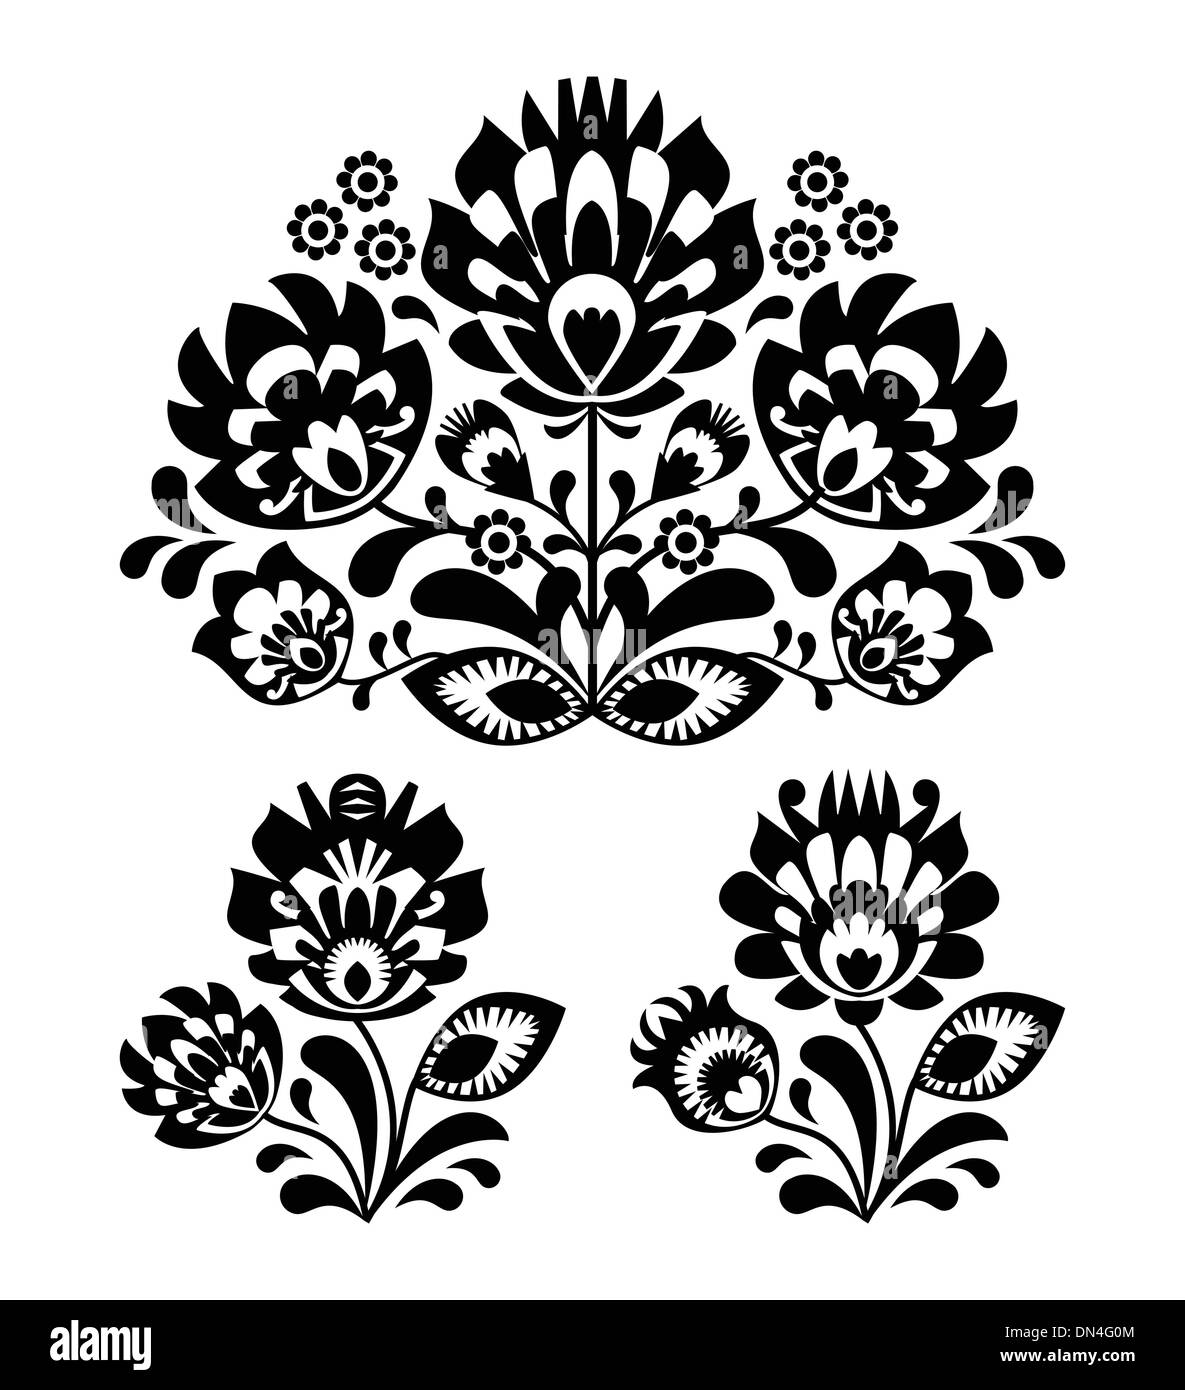 Embroidery Pattern Black and White Stock Photos & Images - Alamy